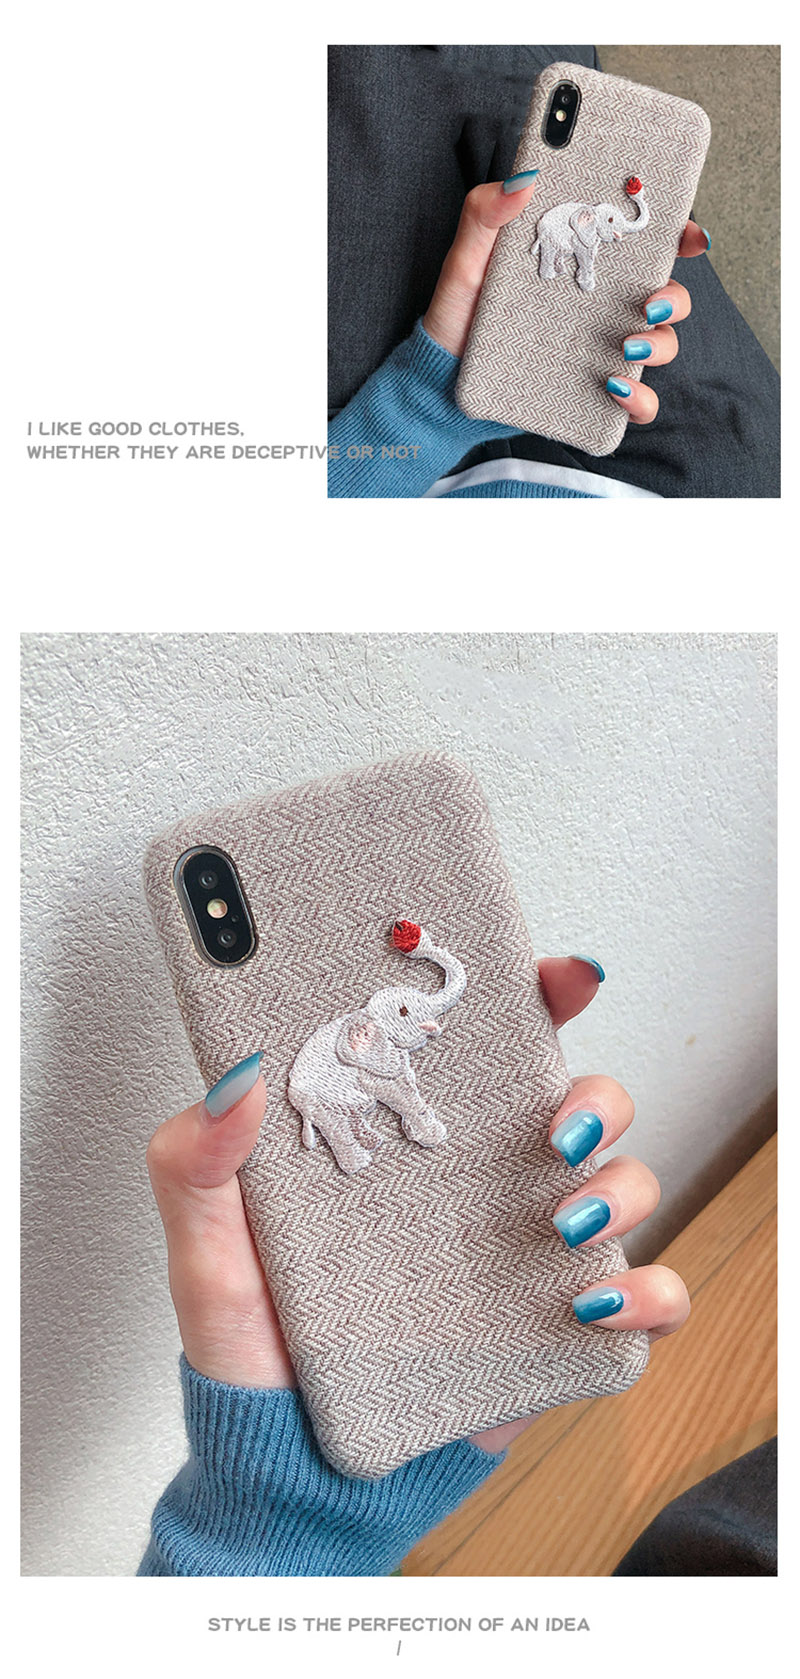 Cute Embroidered Elephant Phone Case For iPhone - Photo 4